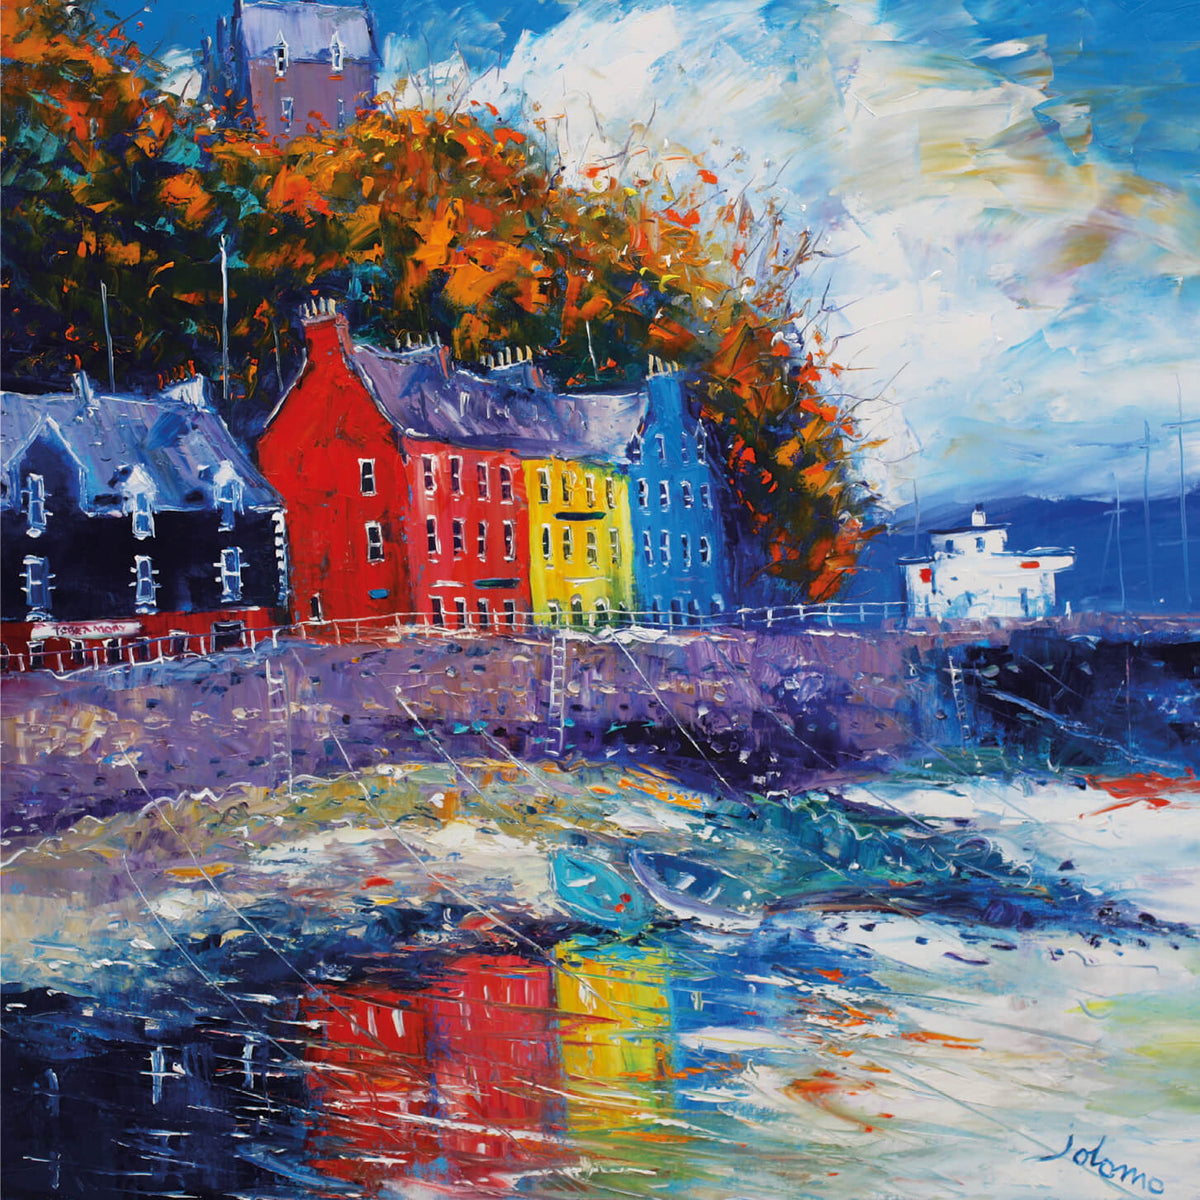 Autumn Light Reflections, Tobermory, Isle of Mull Card by Jolomo